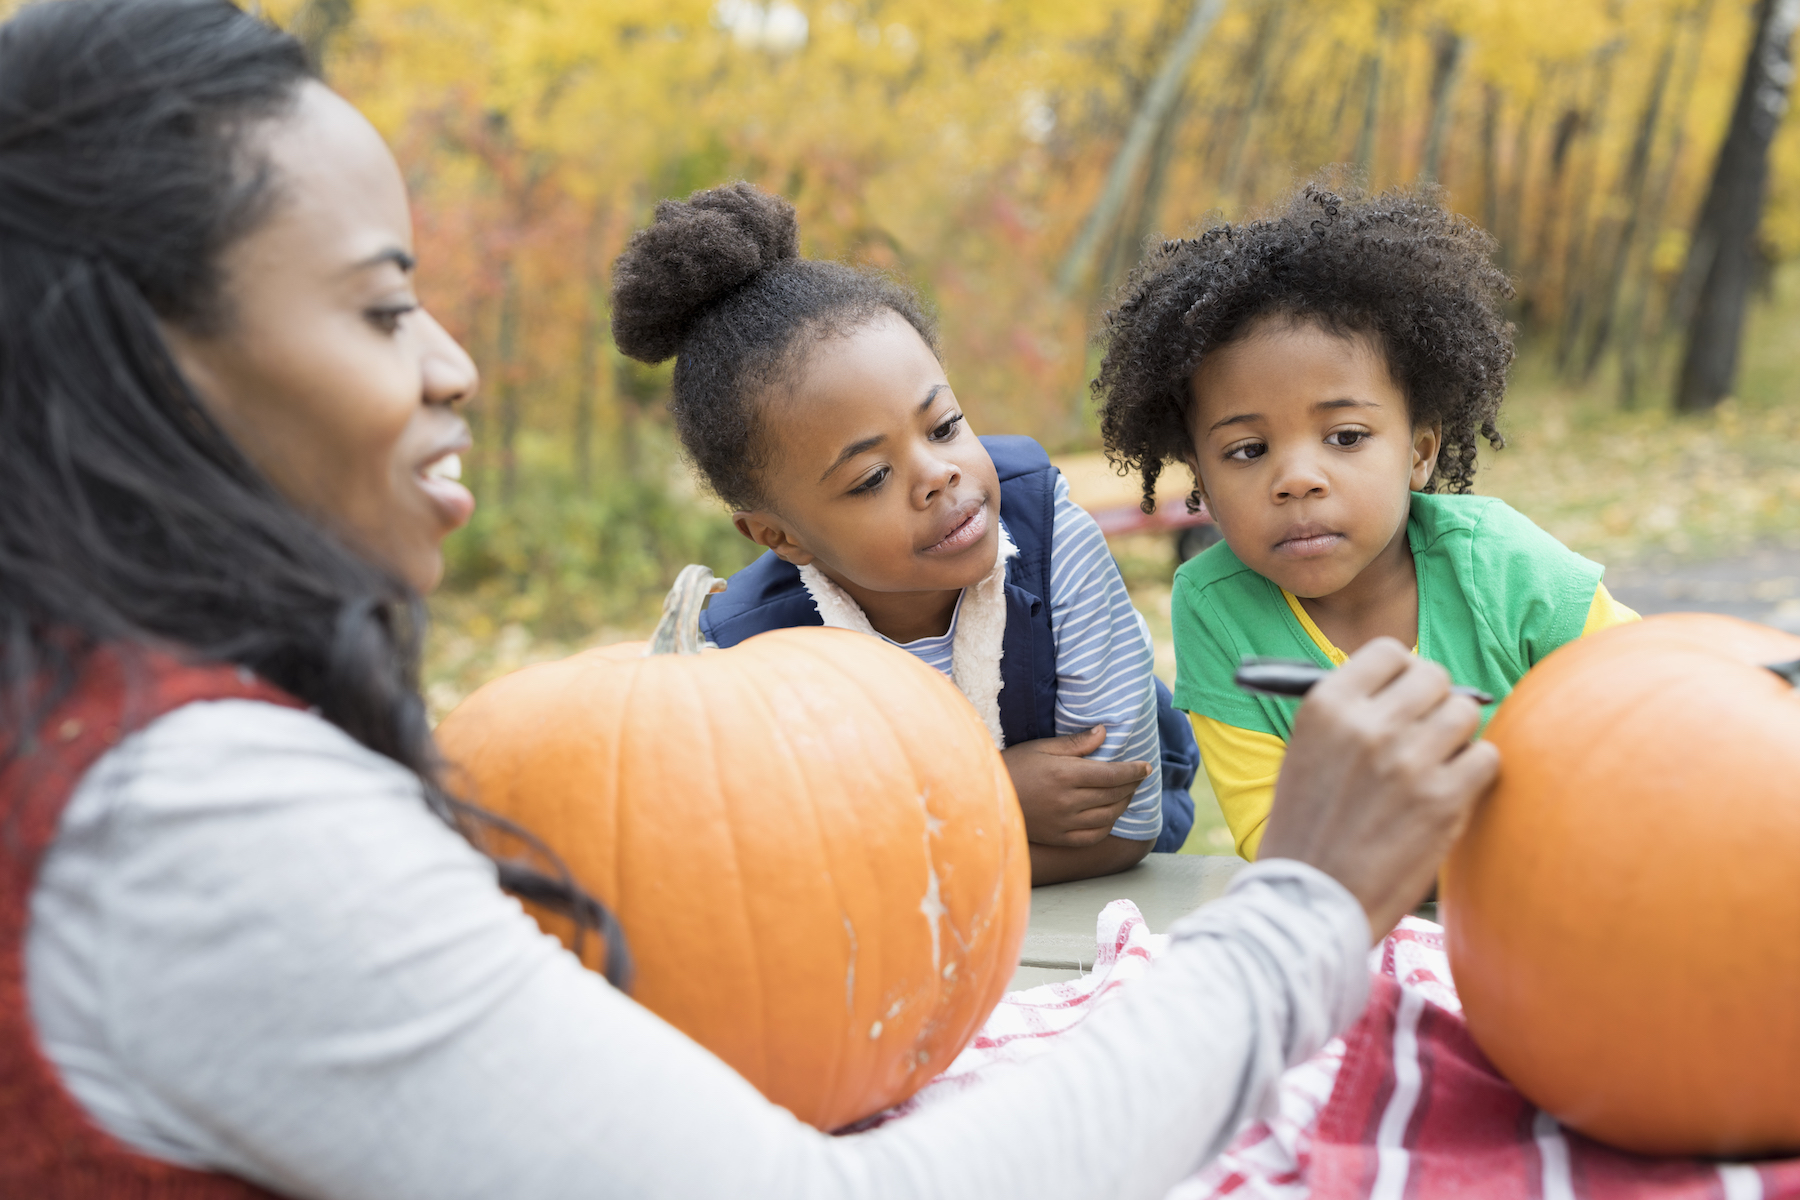 Mom and Kids Carving Pumpkins